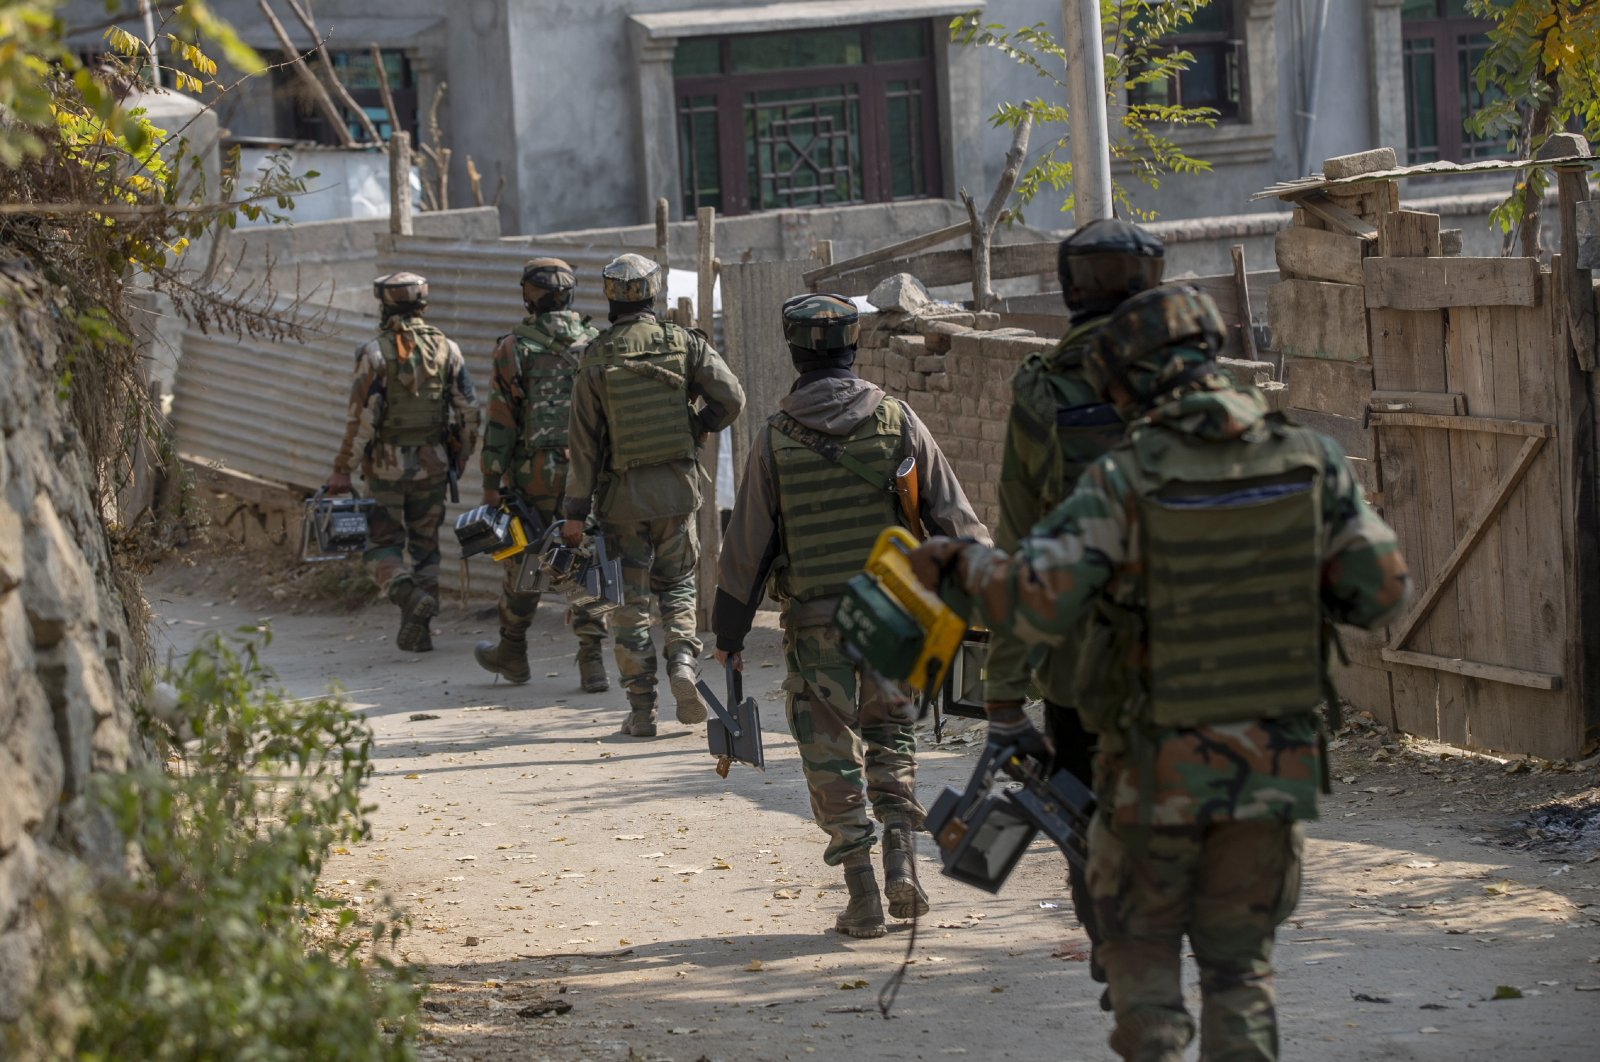 Indian troops in Meej village, south of Srinagar, Jammu and Kashmir, Nov. 6, 2020. (AP Photo)